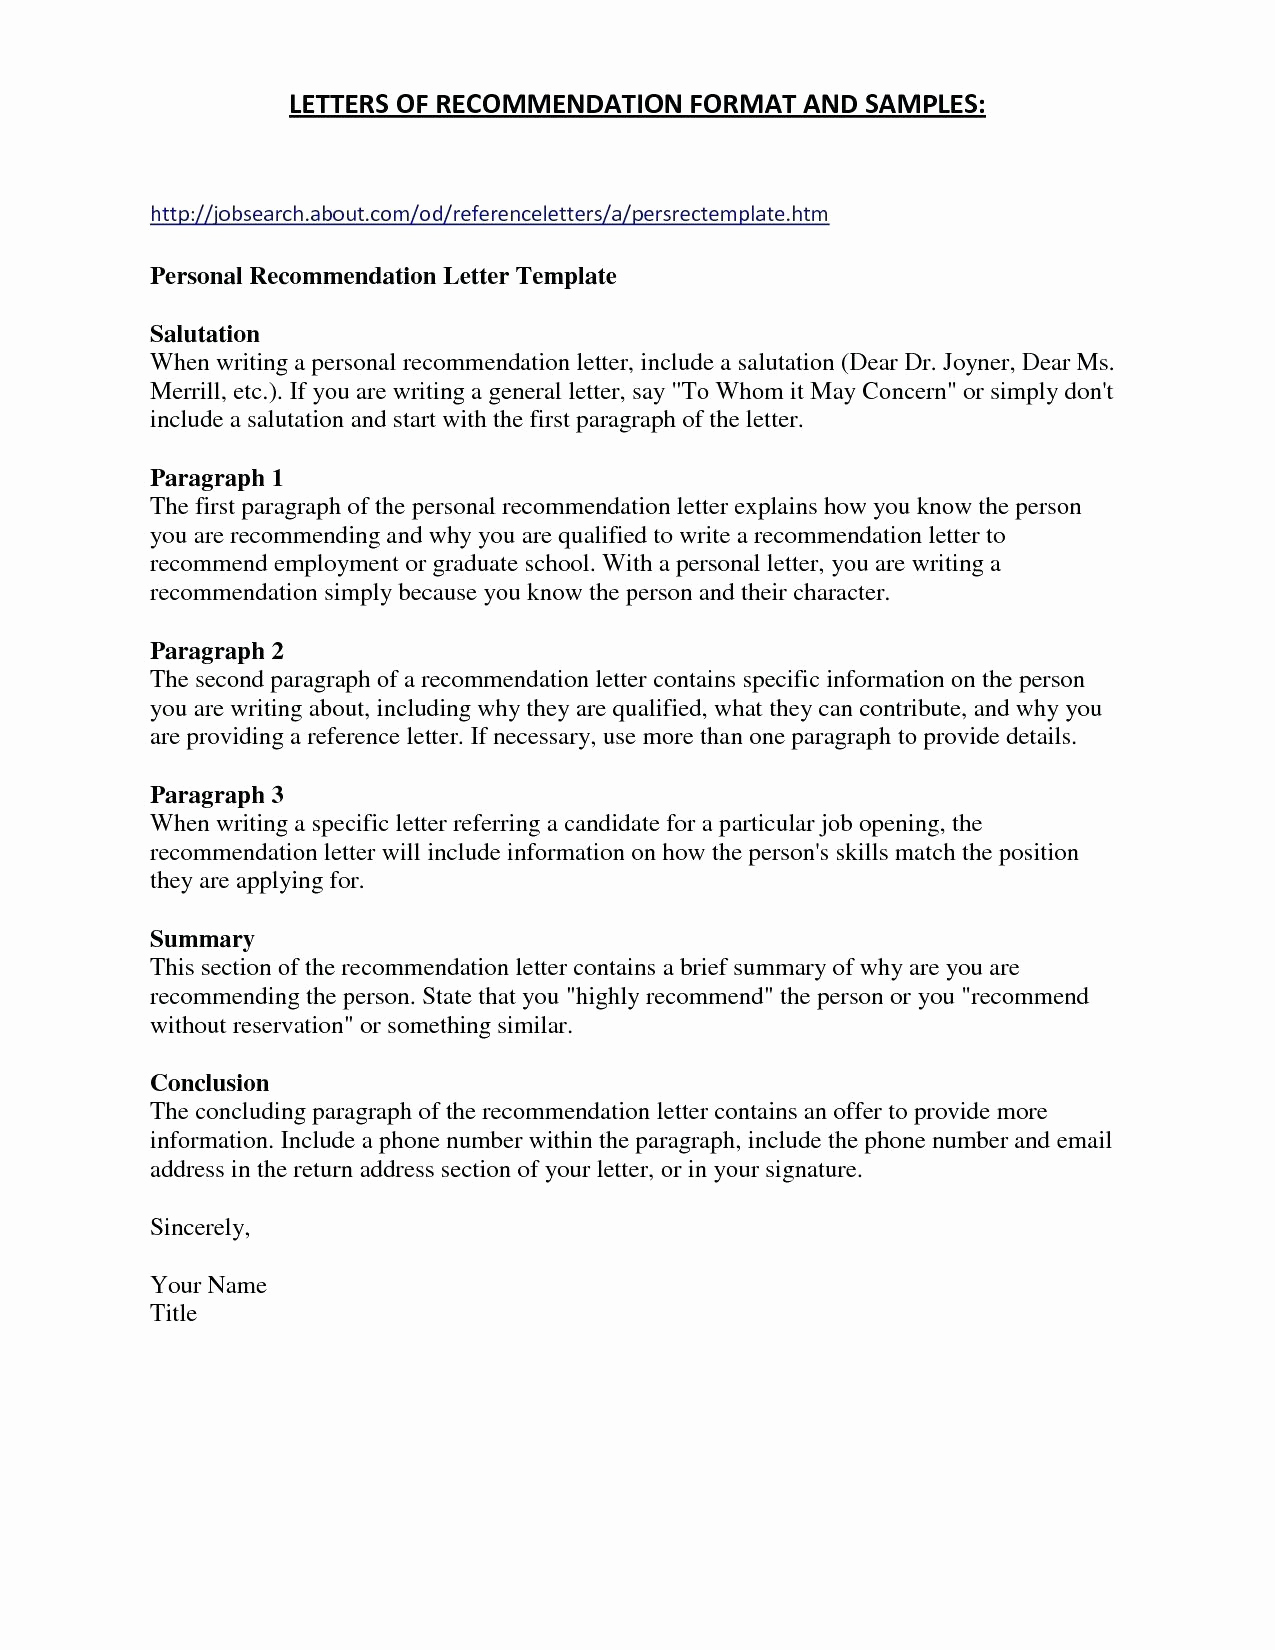 Business Contract Termination Letter Template - Business Contract Termination Letter Lovely Lovely Business Contract